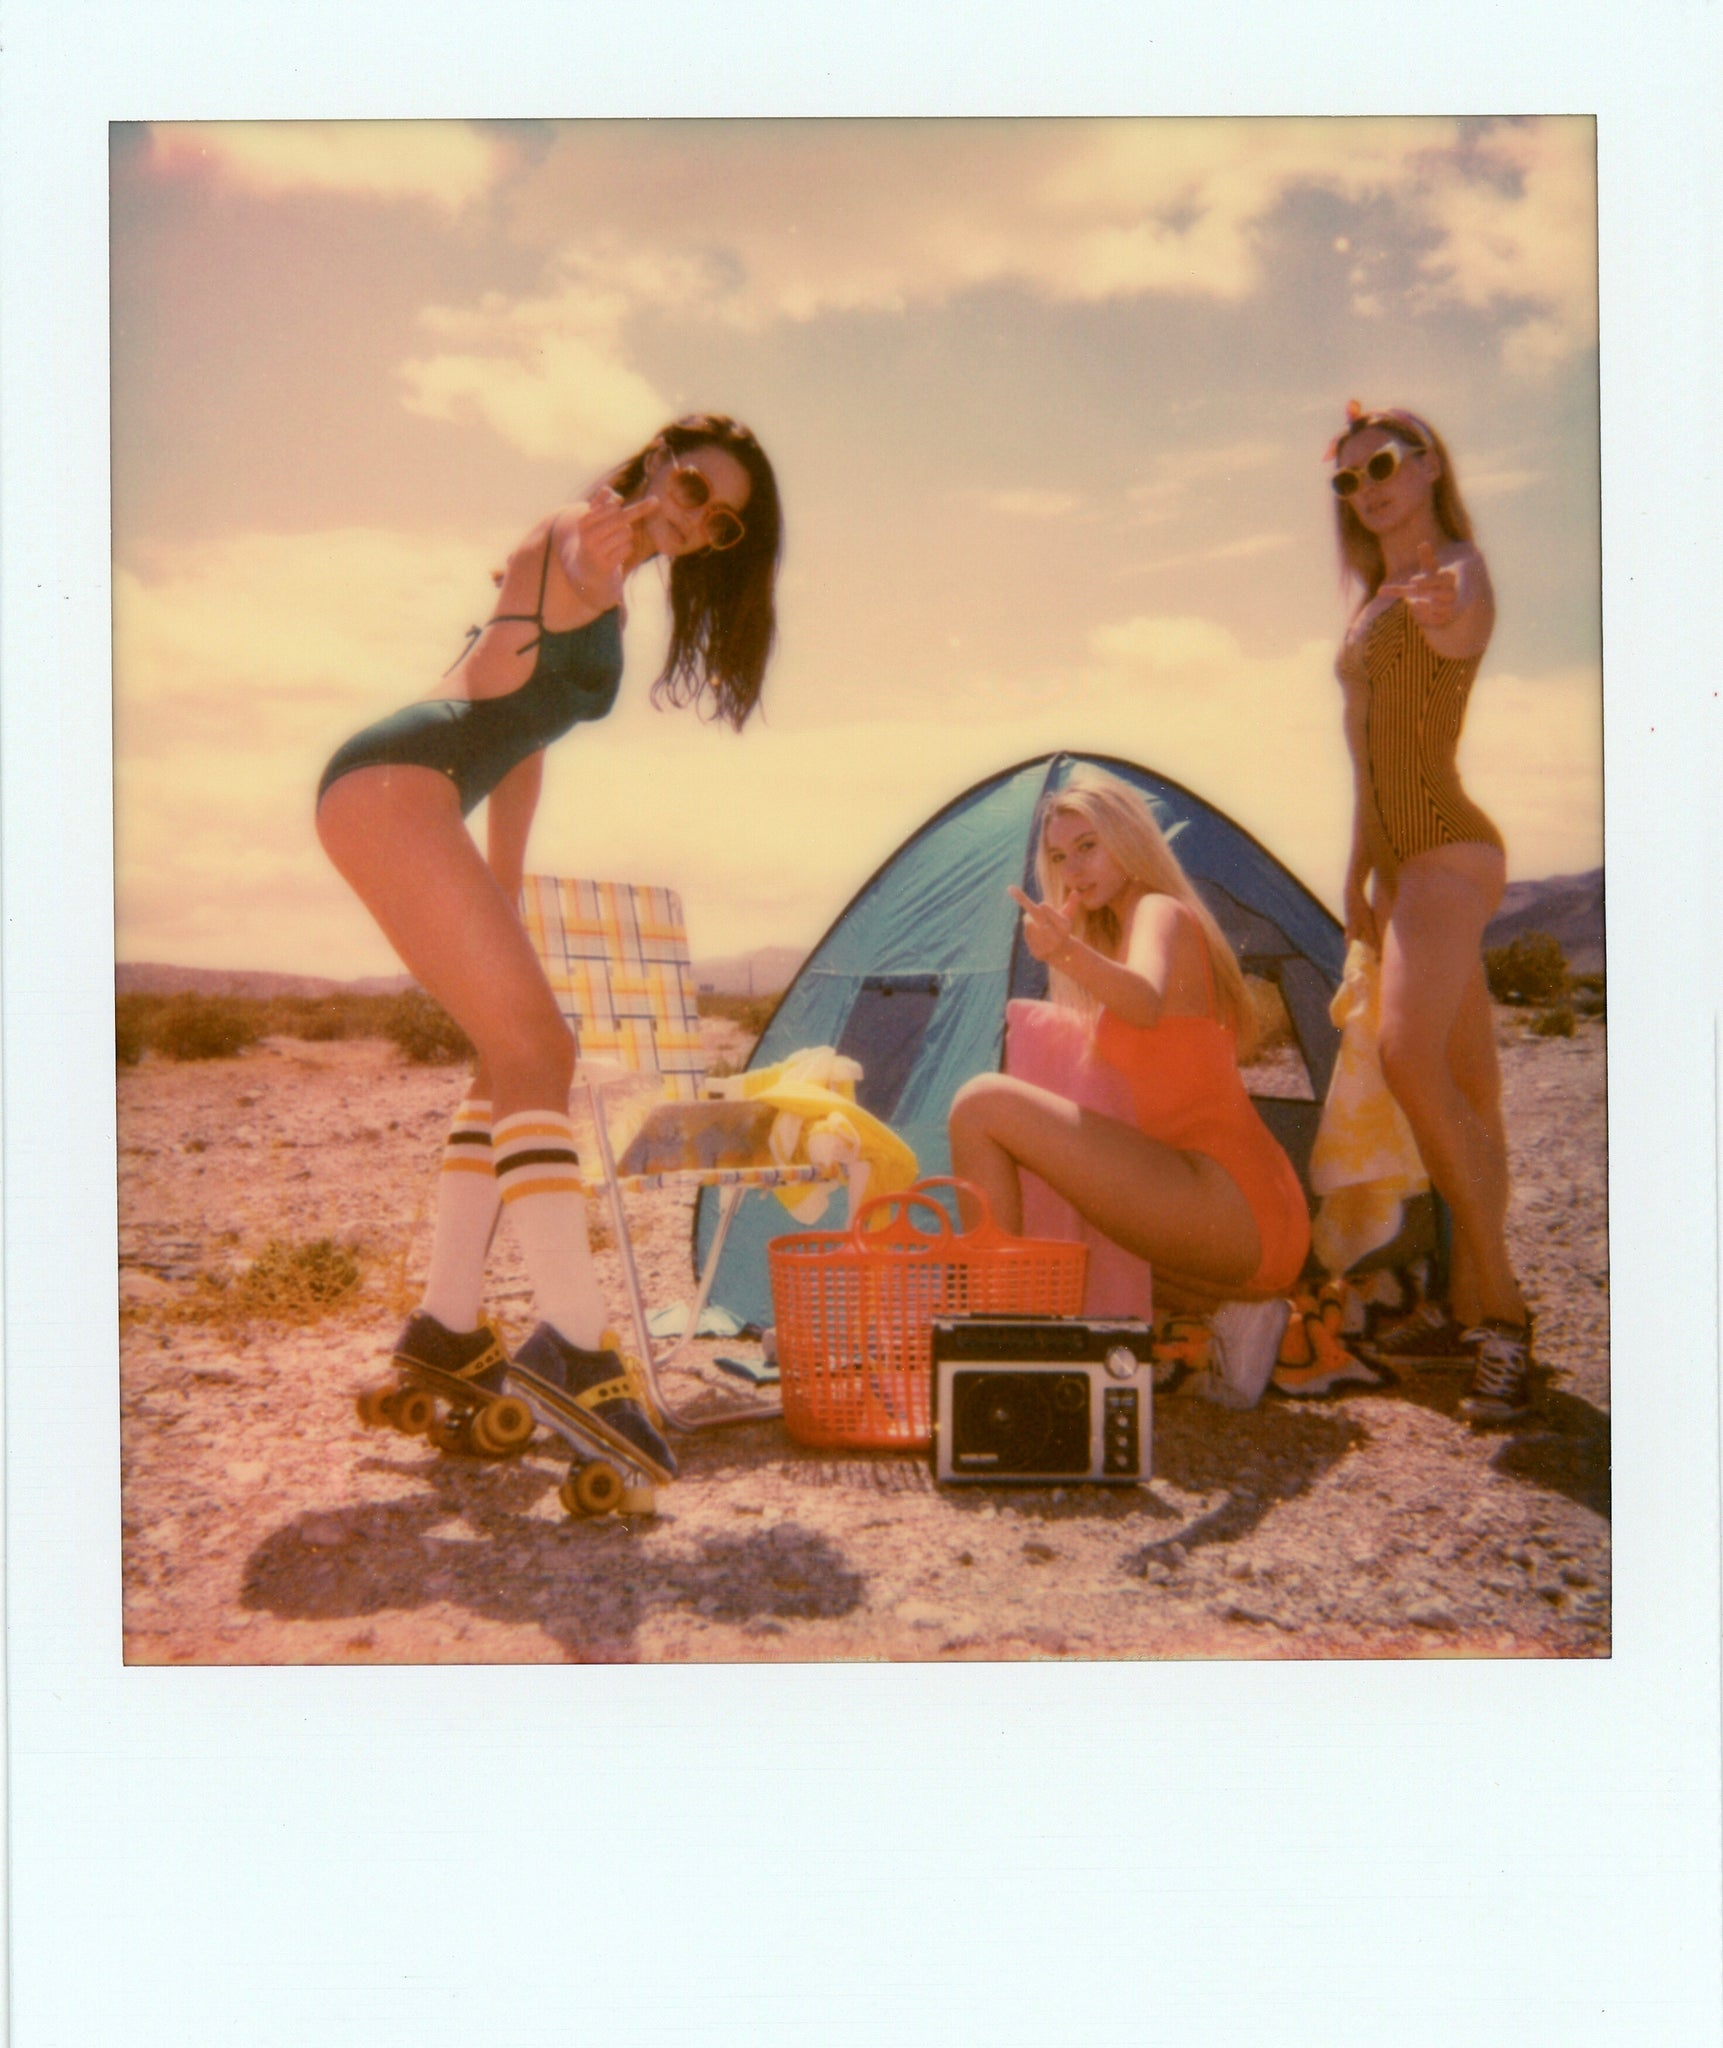 Brooke Olimpieri - Work - Polaroid - Photo 13